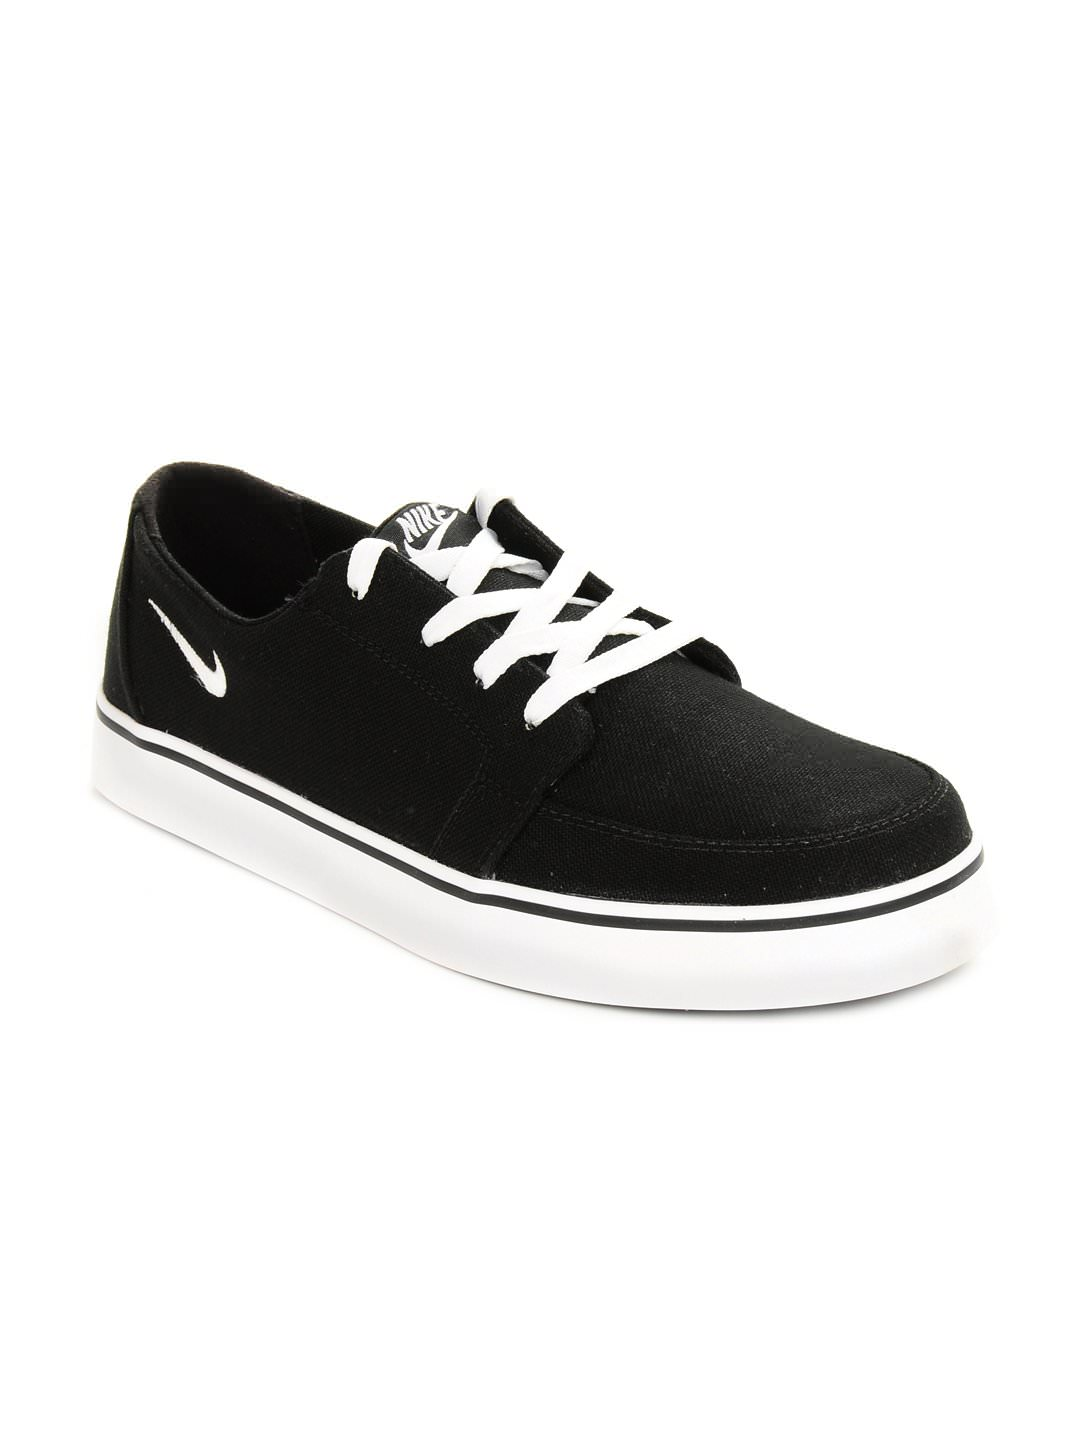 New Nike Womenu0026#39;s Tanjun Casual Sneakers From Finish Line - Finish Line Athletic Sneakers - Shoes ...